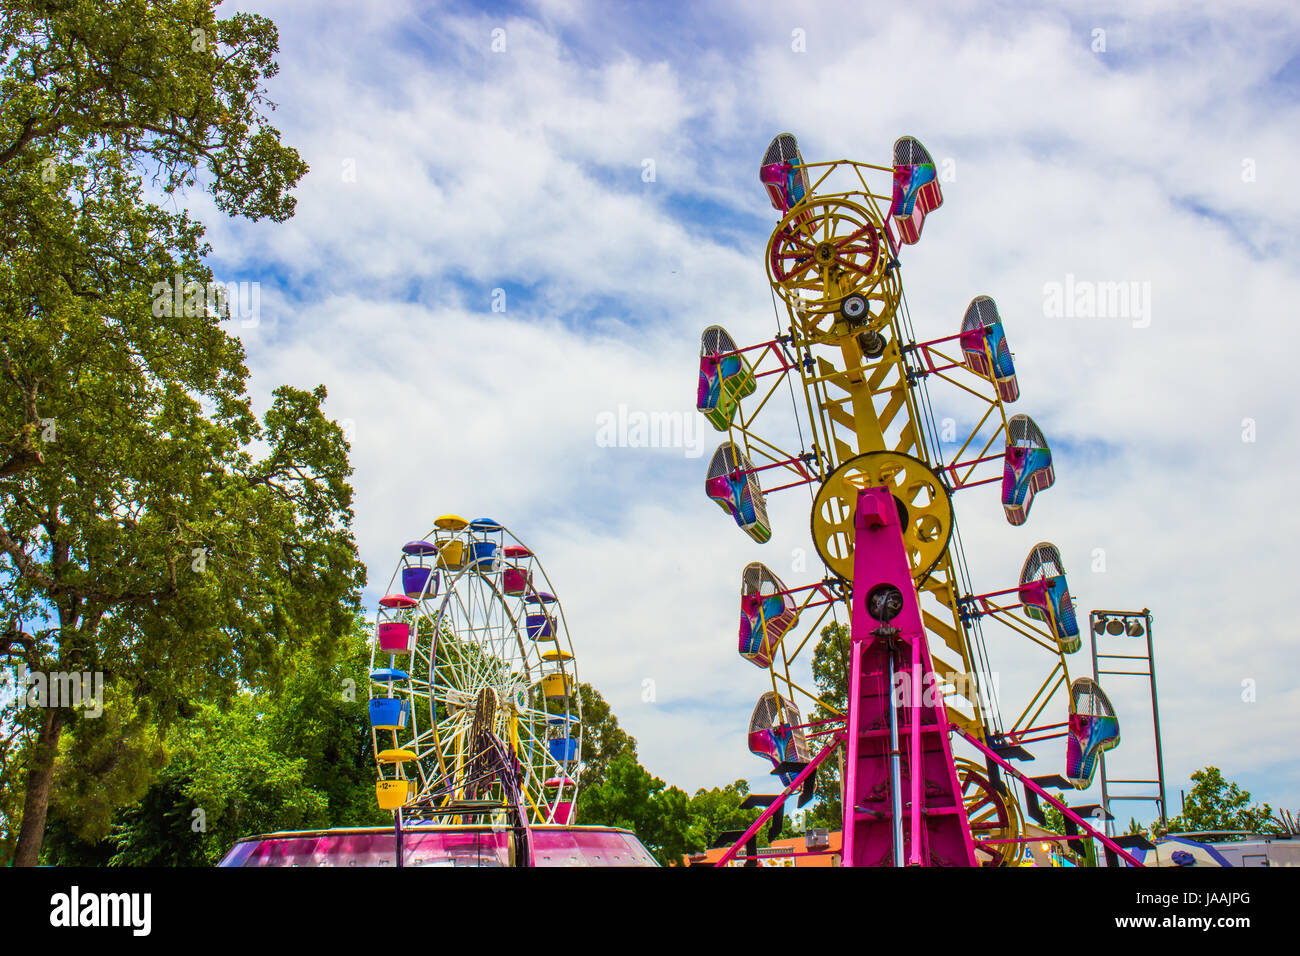 Two Amusement Rides At Local County Fair - Stock Image